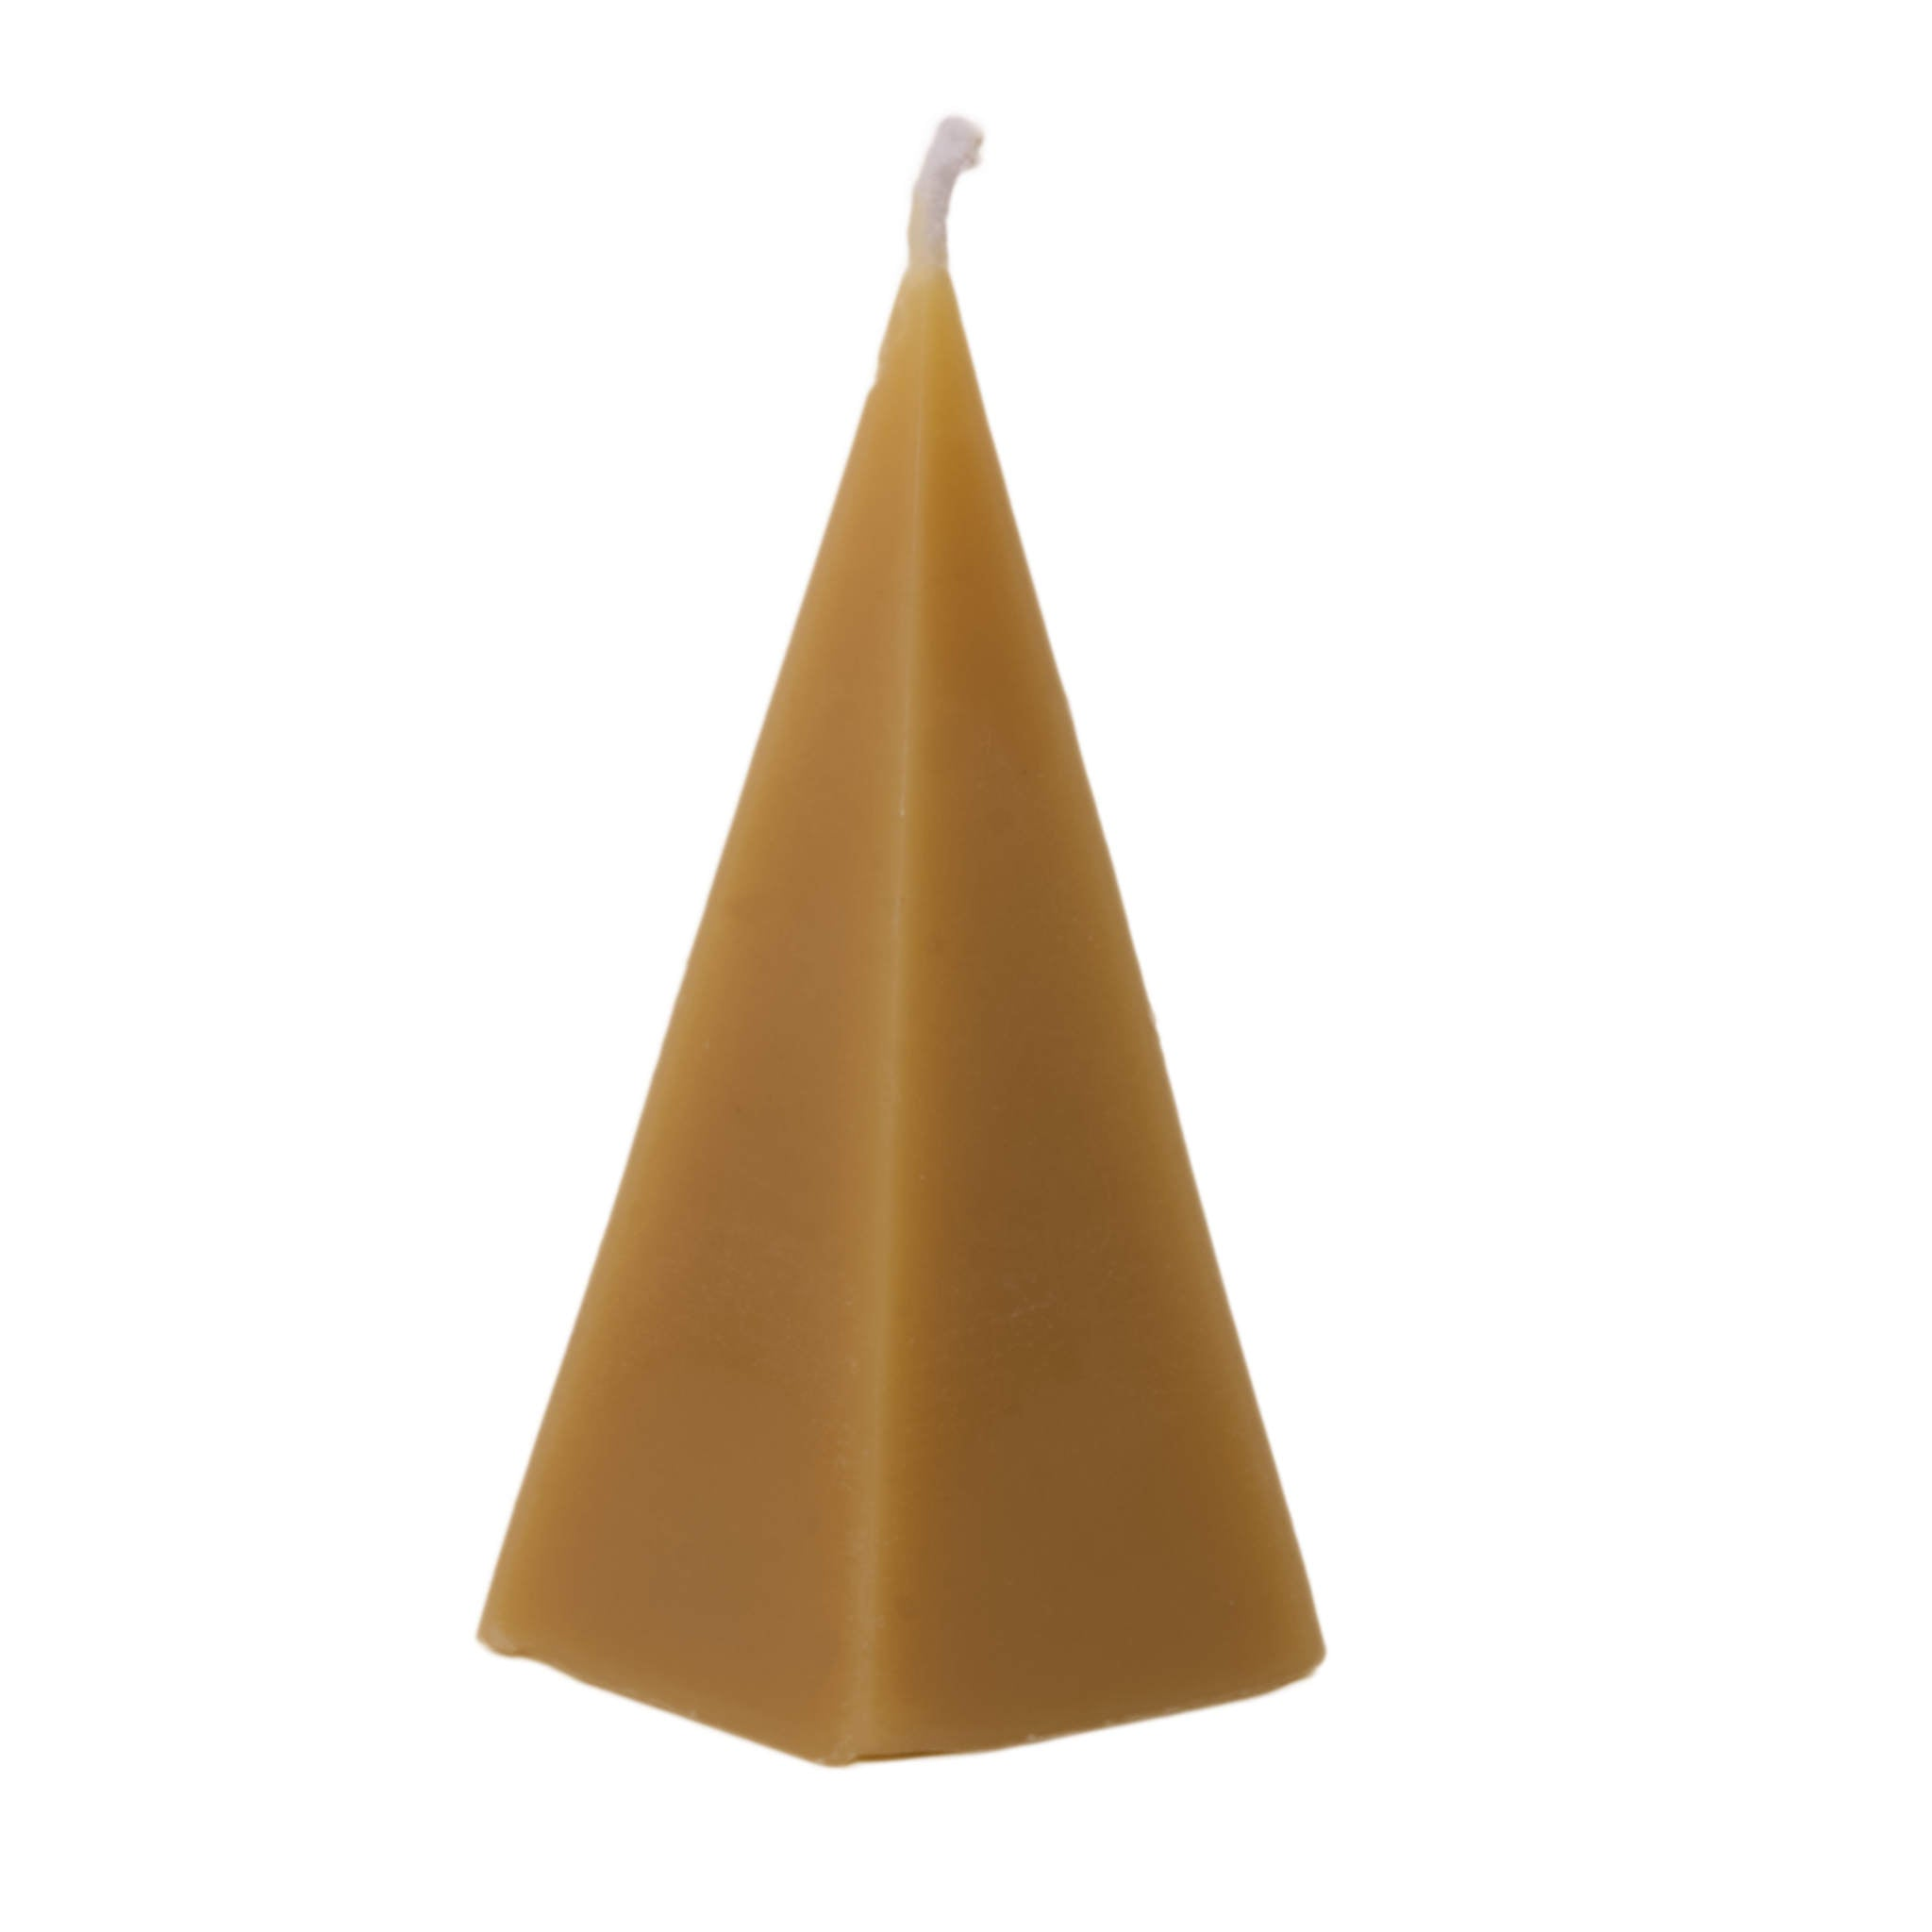 Pyramid Candle Beeswax